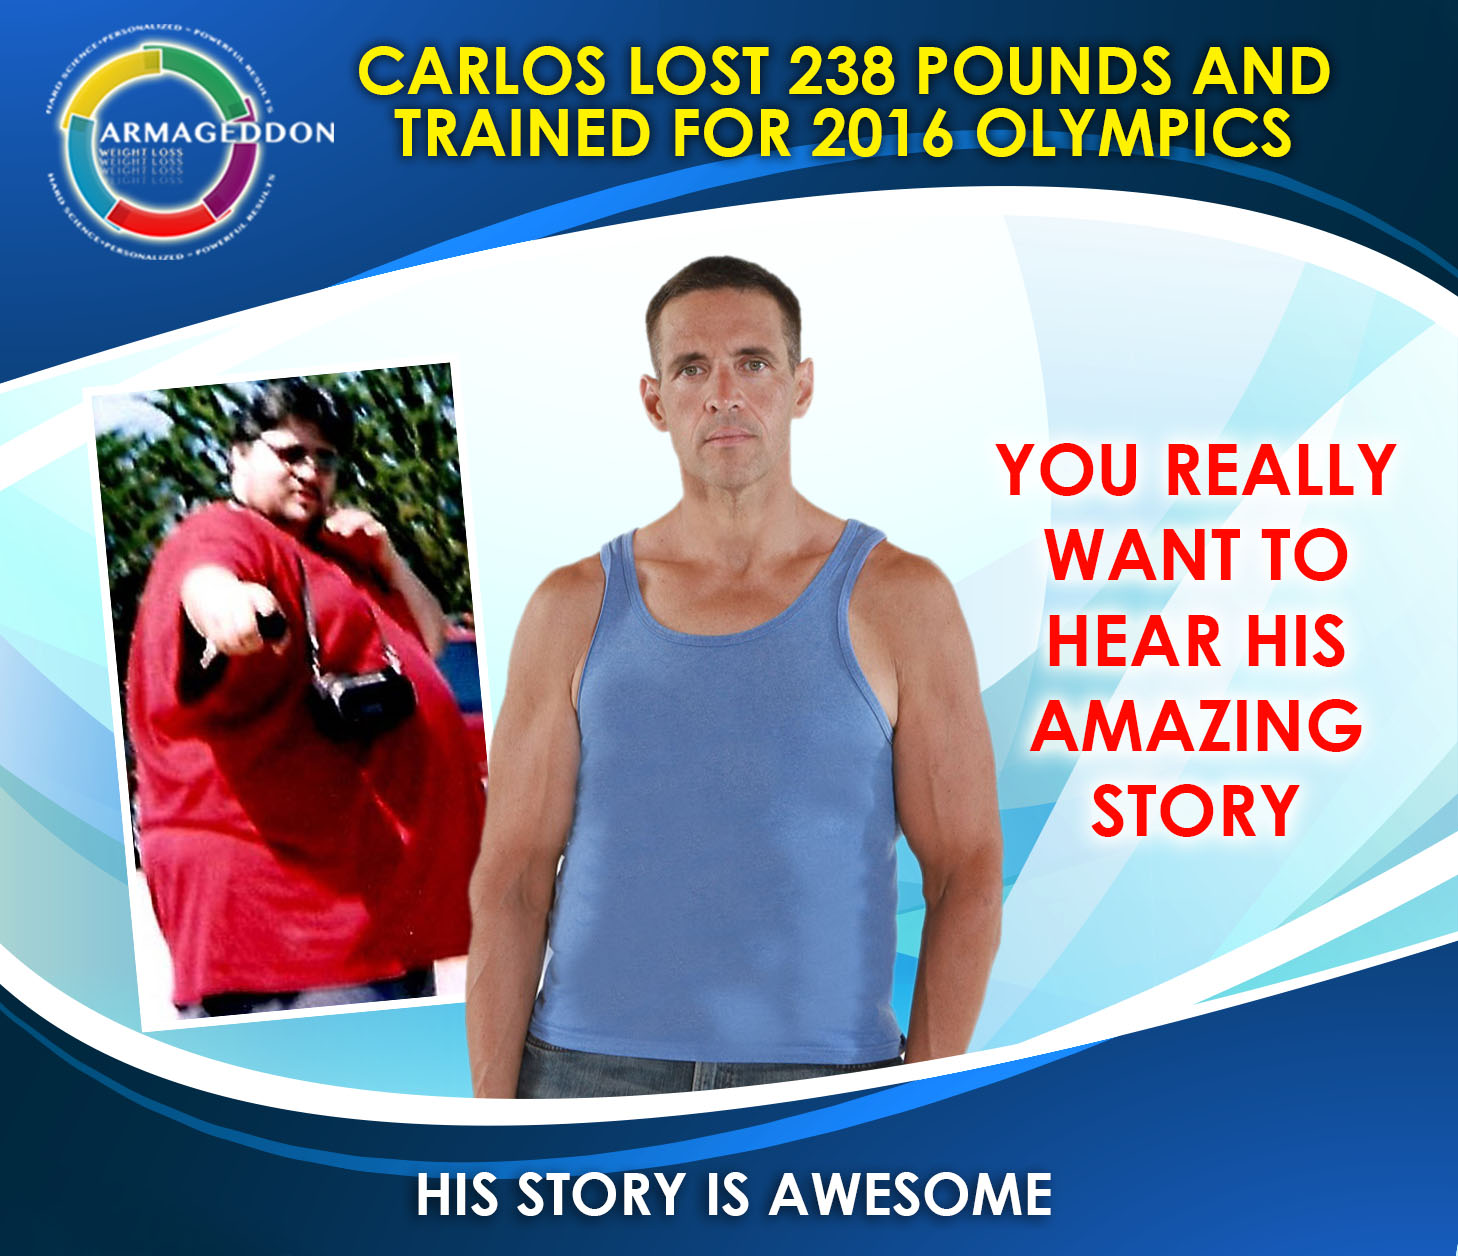 CARLOS LOST 238 POUNDS - TRAINED FOR THE 2016 OLYMPICS ...